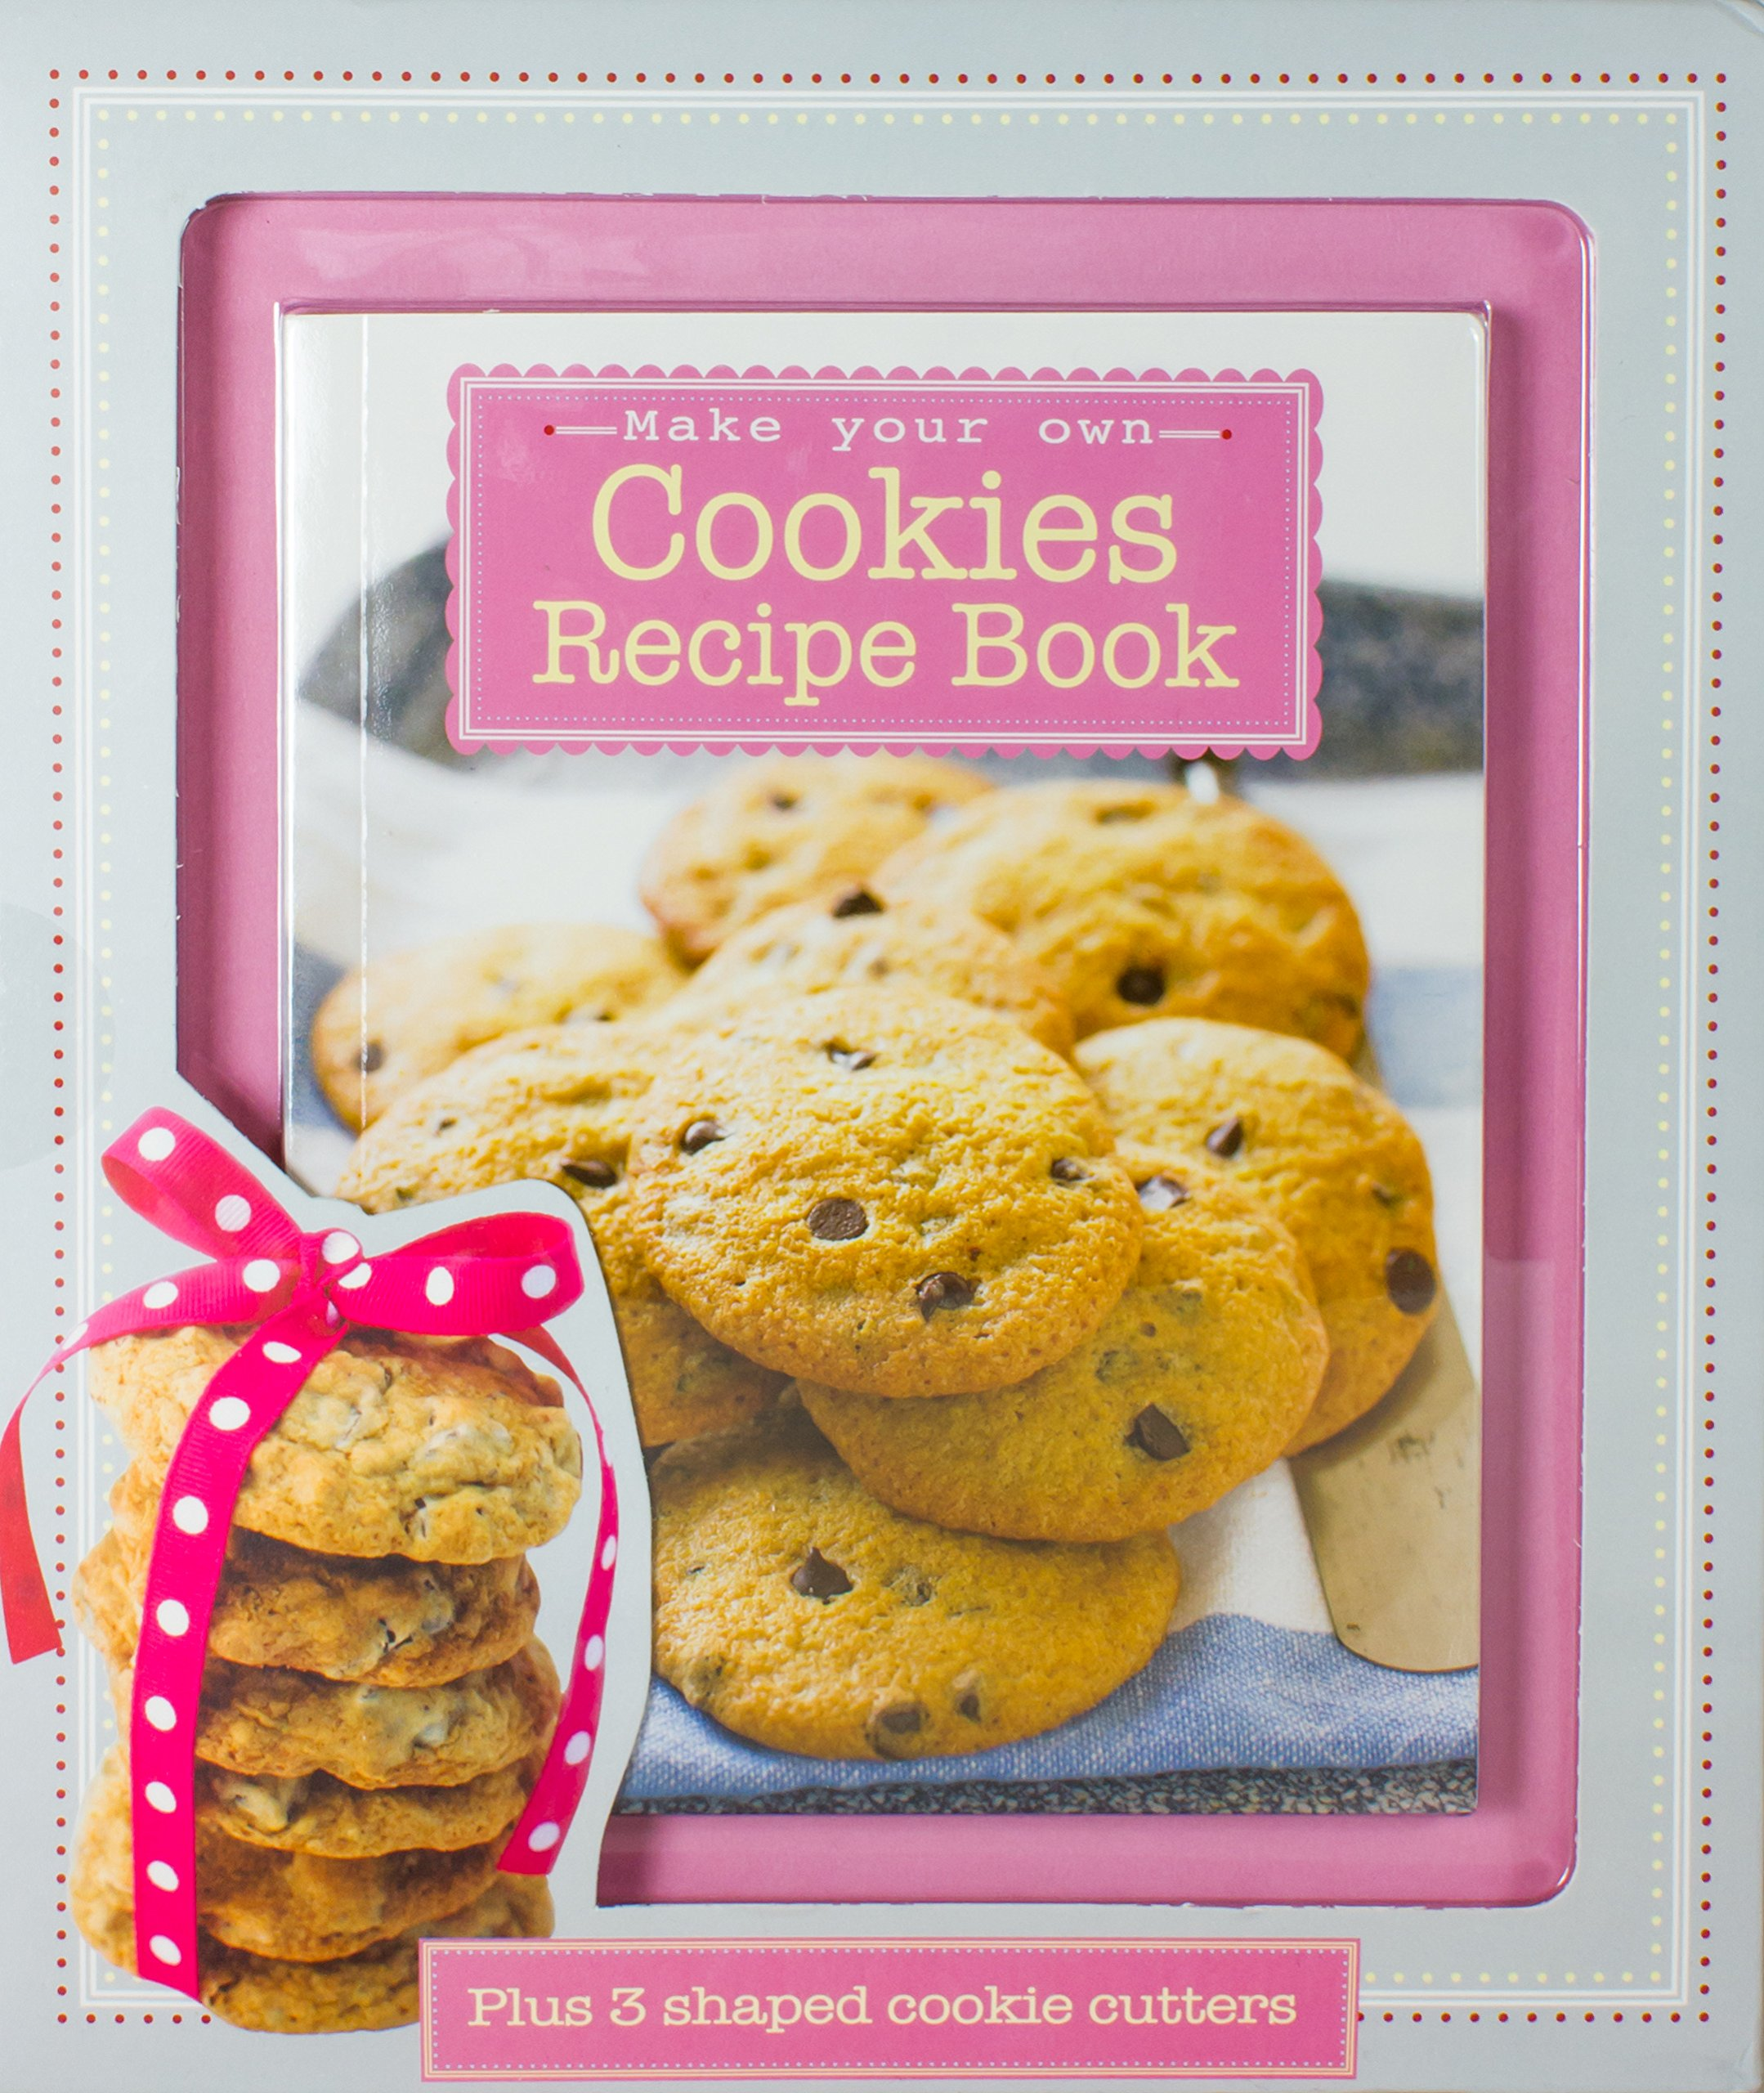 Make your own cookies kit with fantastic recipe book plus 3 shaped make your own cookies kit with fantastic recipe book plus 3 shaped cookie cutters box parragon books love food editors 9781781864050 amazon solutioingenieria Image collections